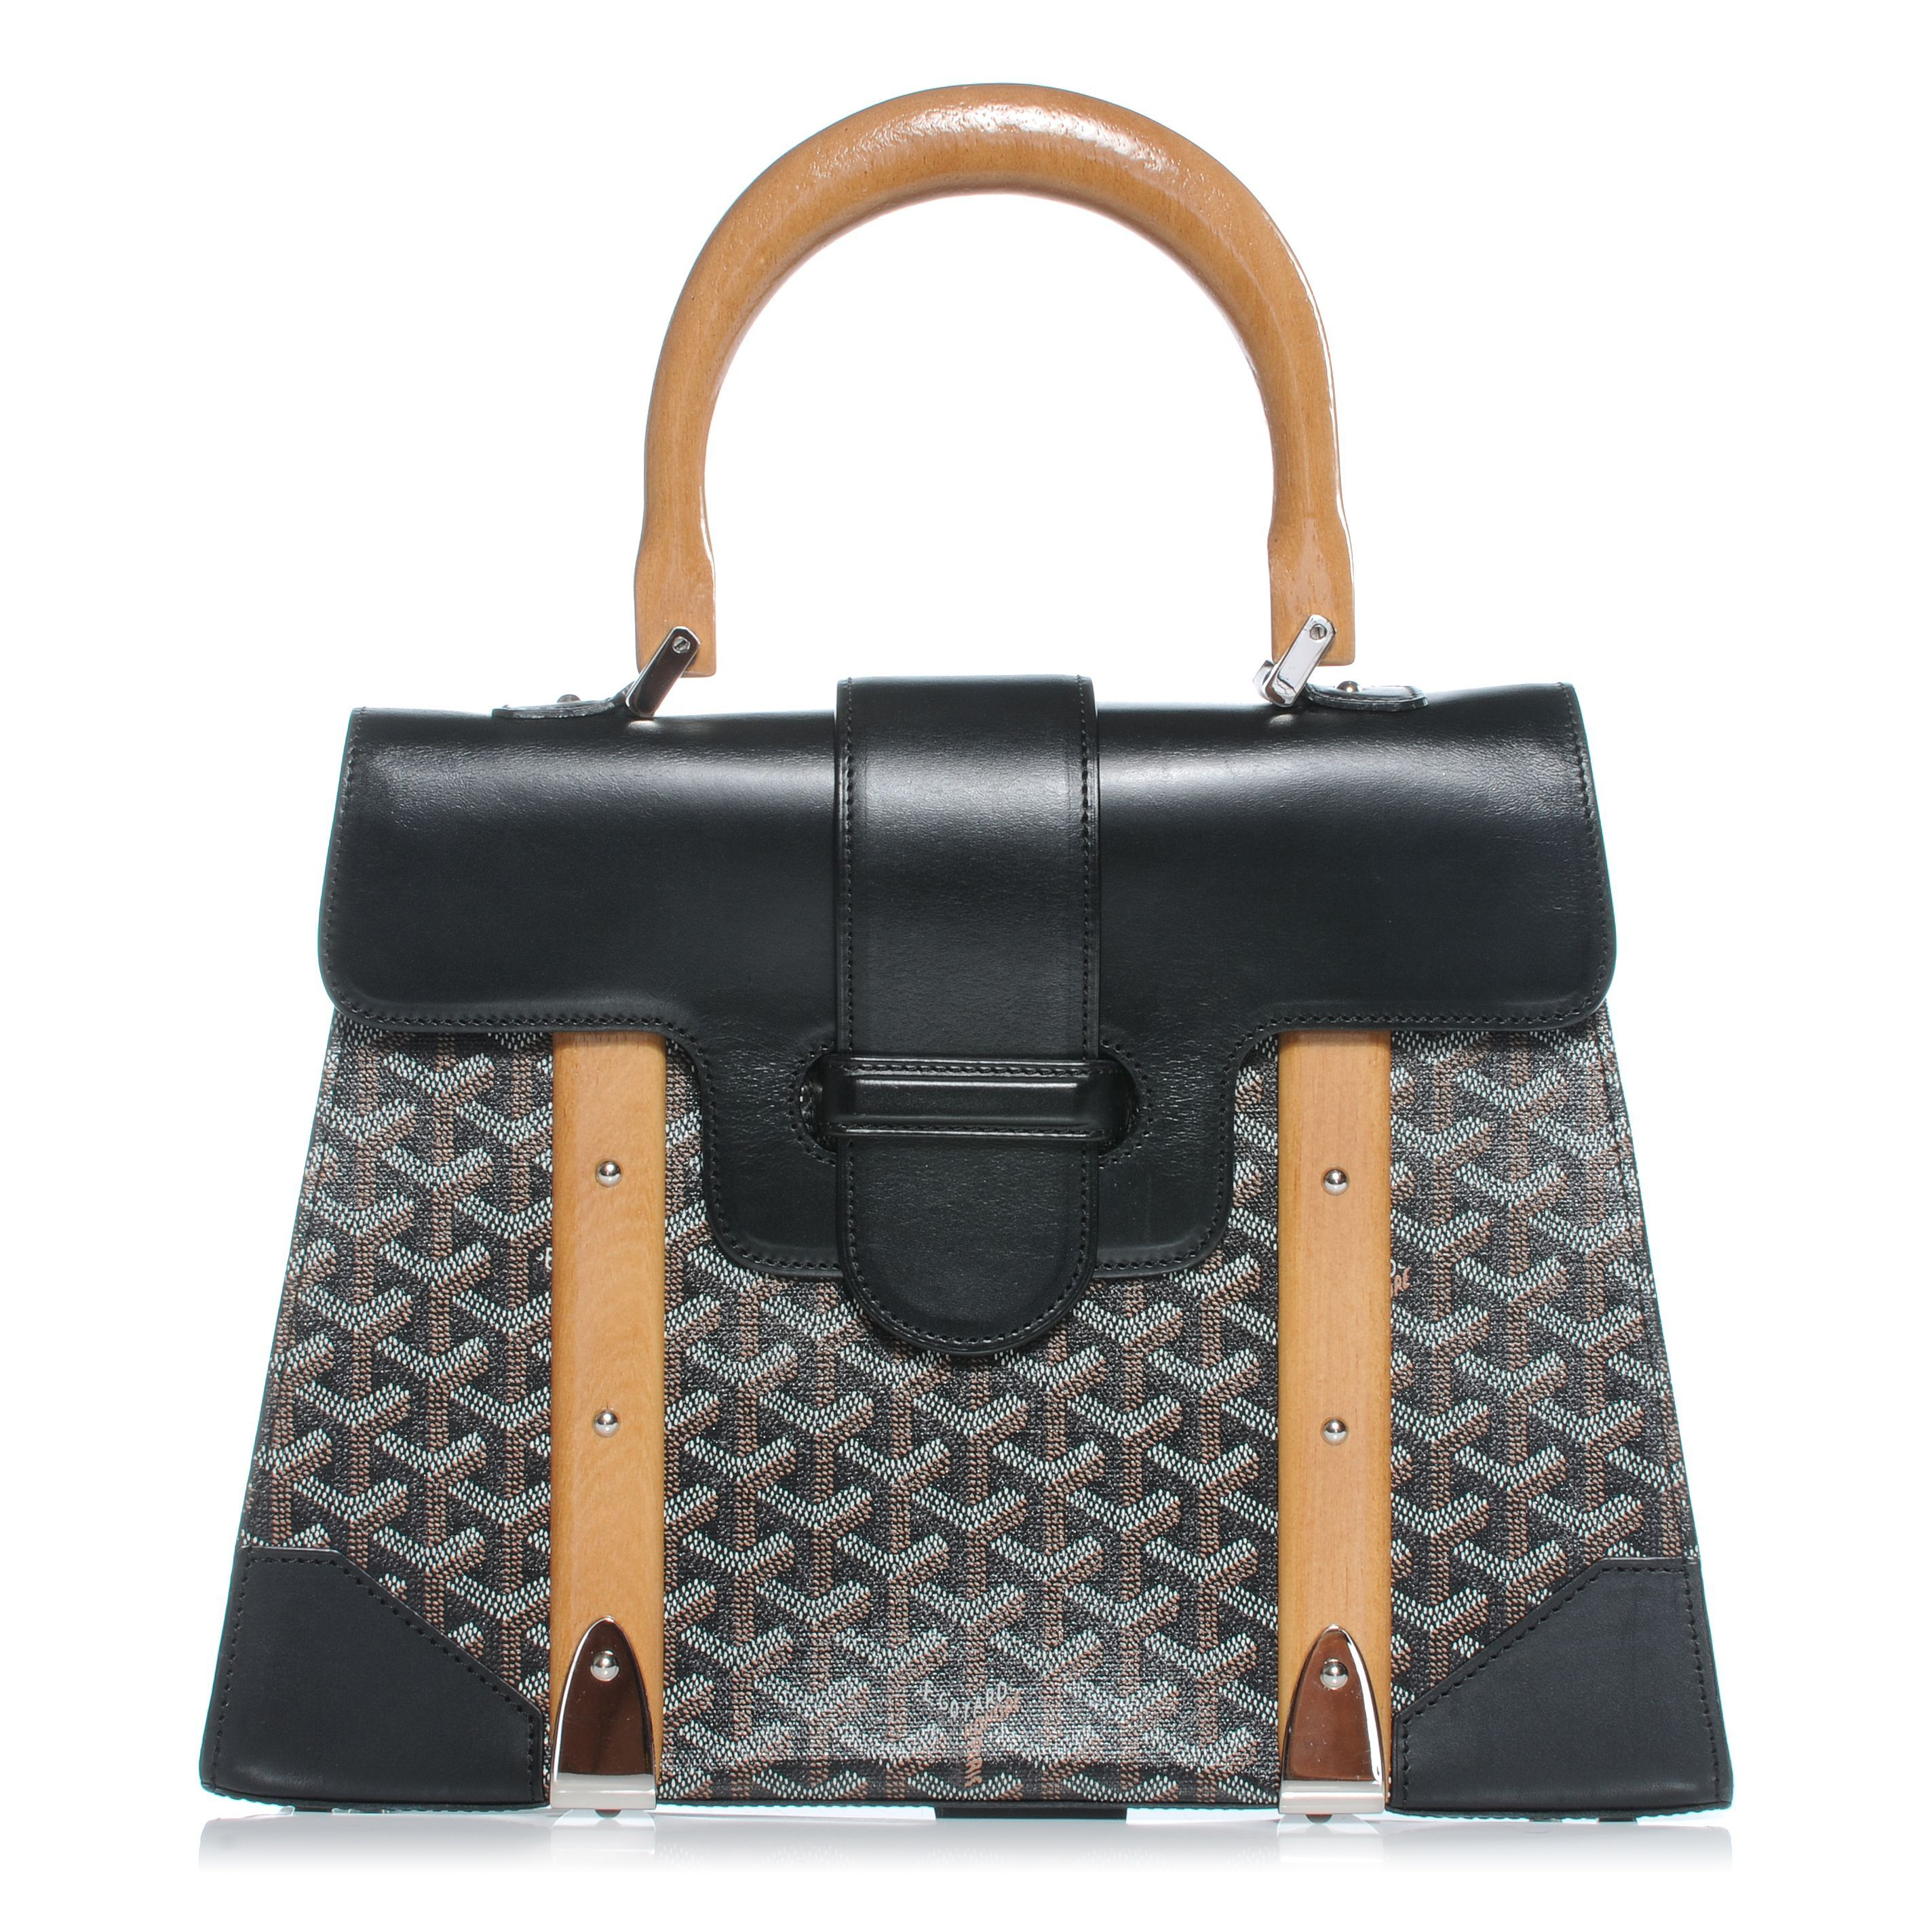 The Goyard Saigon Bag Is A Very Vintage Looking Structured That We Can T Help But Think Resembles Hard Bod Hermes Kelly Or Delvaux Brillant